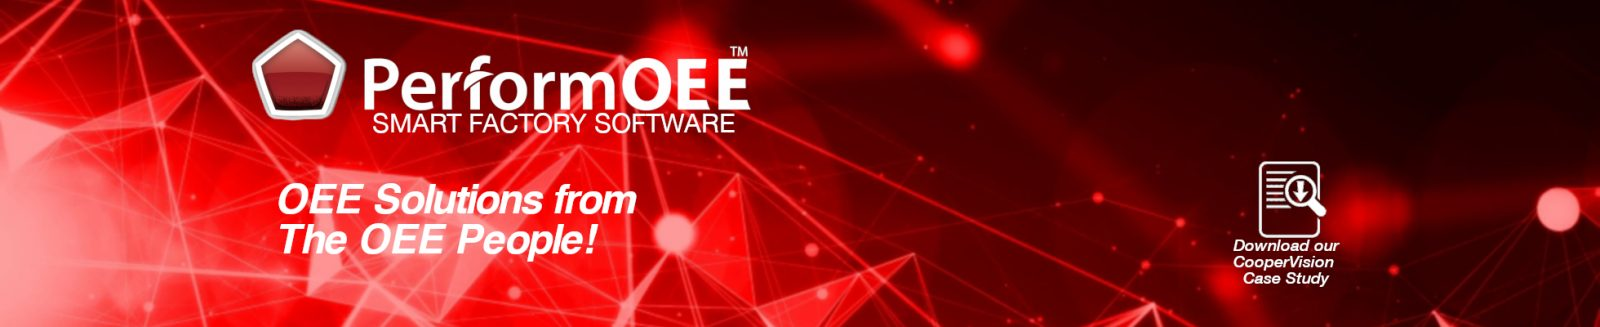 OEE Software | PerformOEE Smart Factory Software | OEEsystems